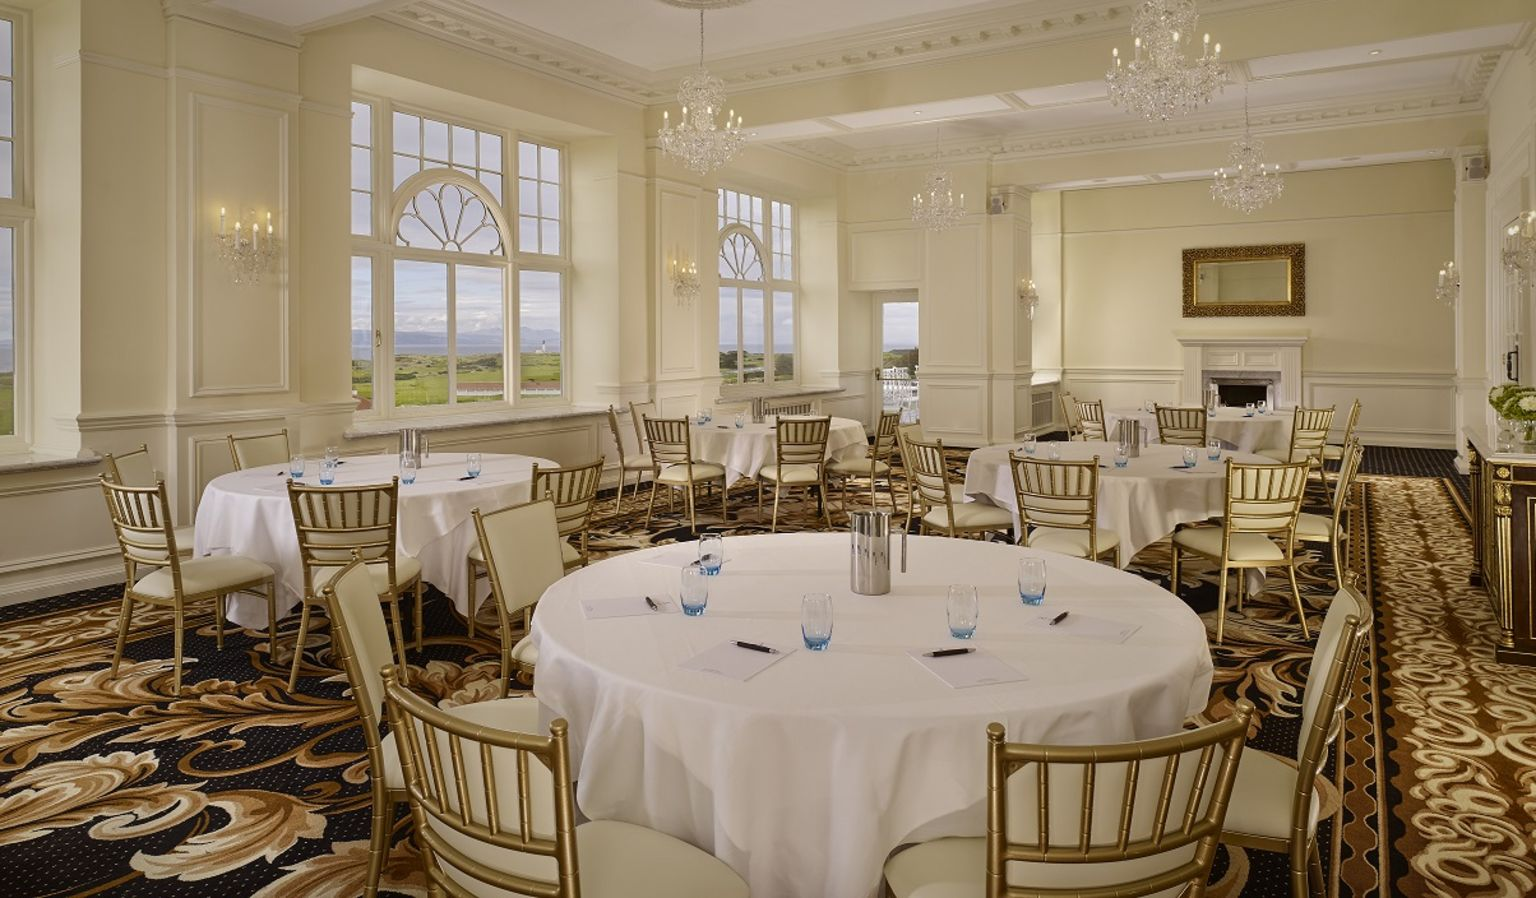 Ailsa Craig Event Room with Circle Tables and Chairs